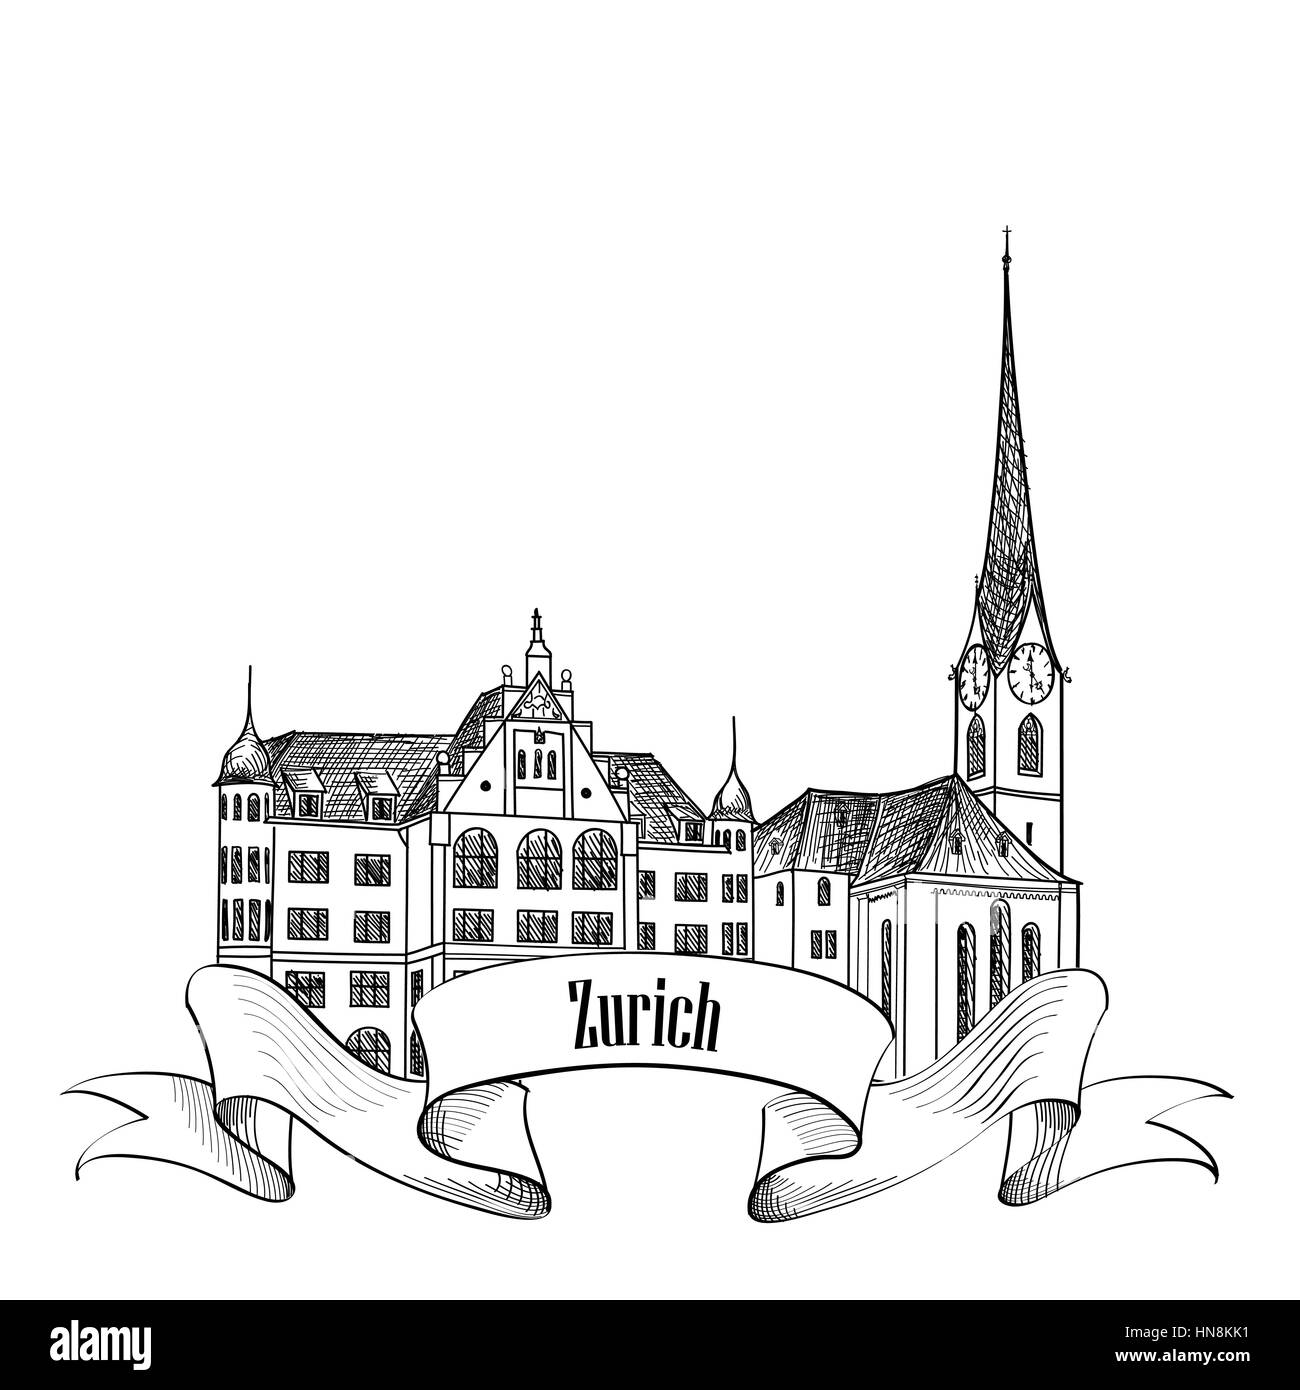 Zurich. City landmark label. Symbol of the capital of Switzerland. - Stock Vector